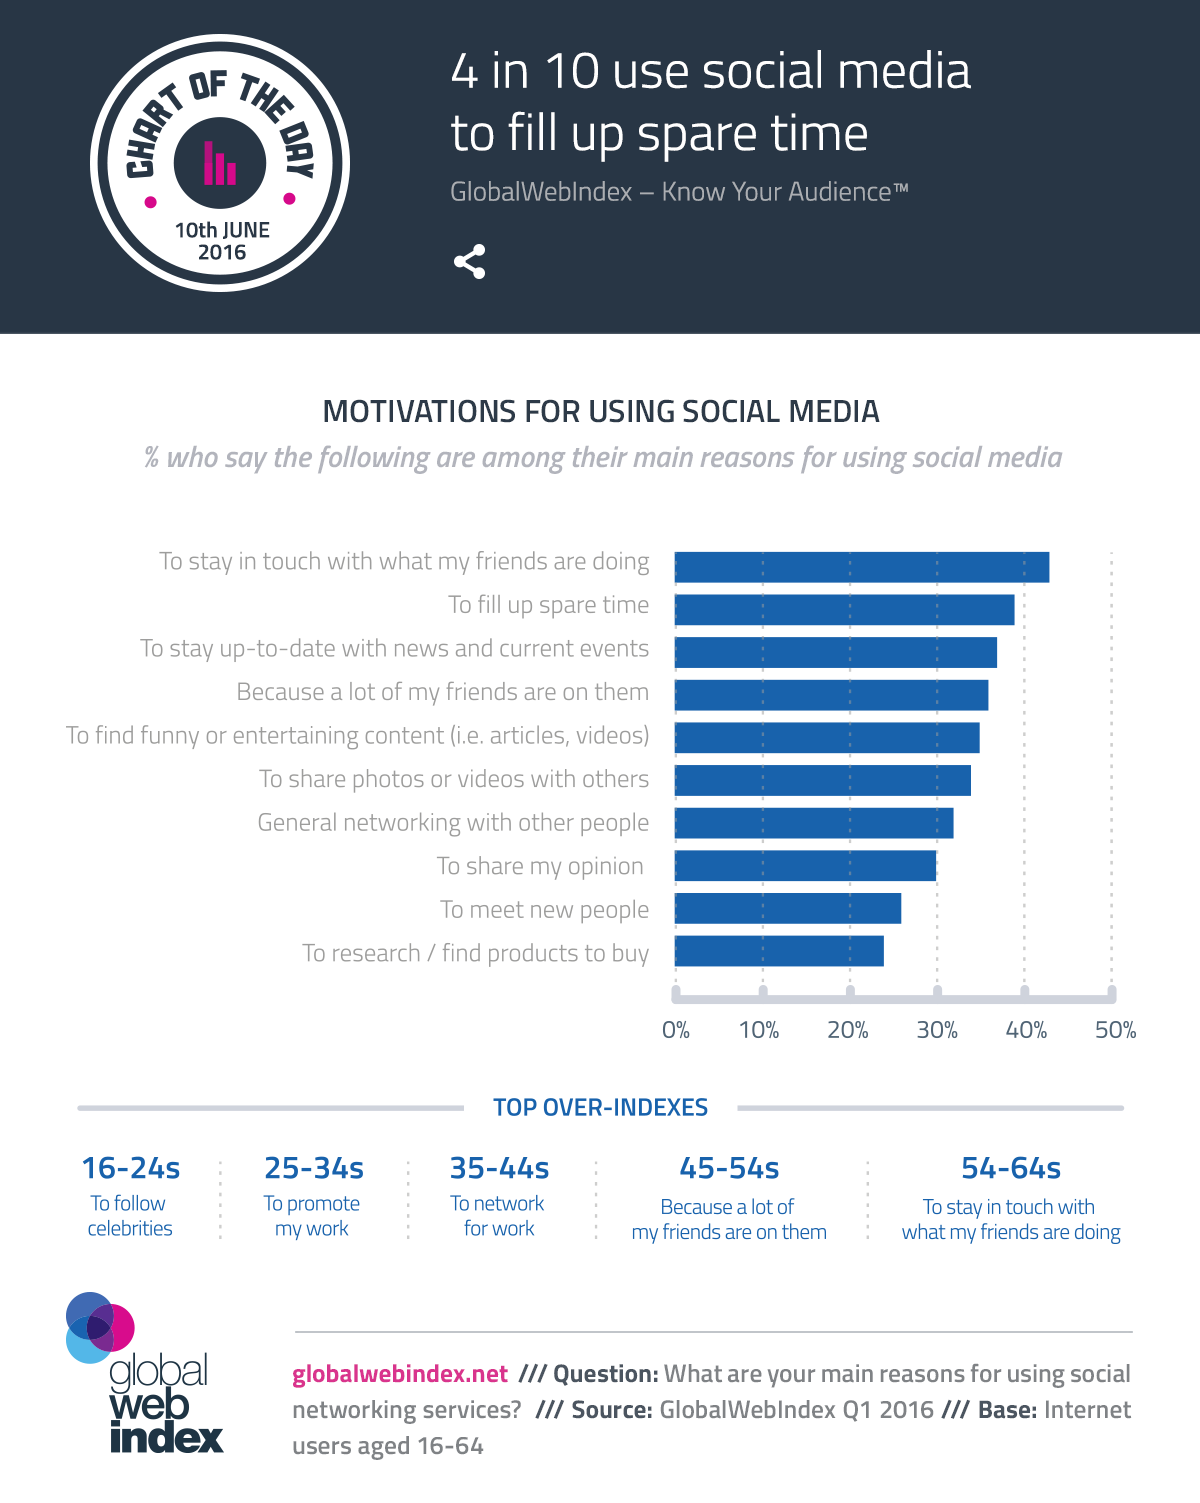 4 in 10 use social media to fill up spare time